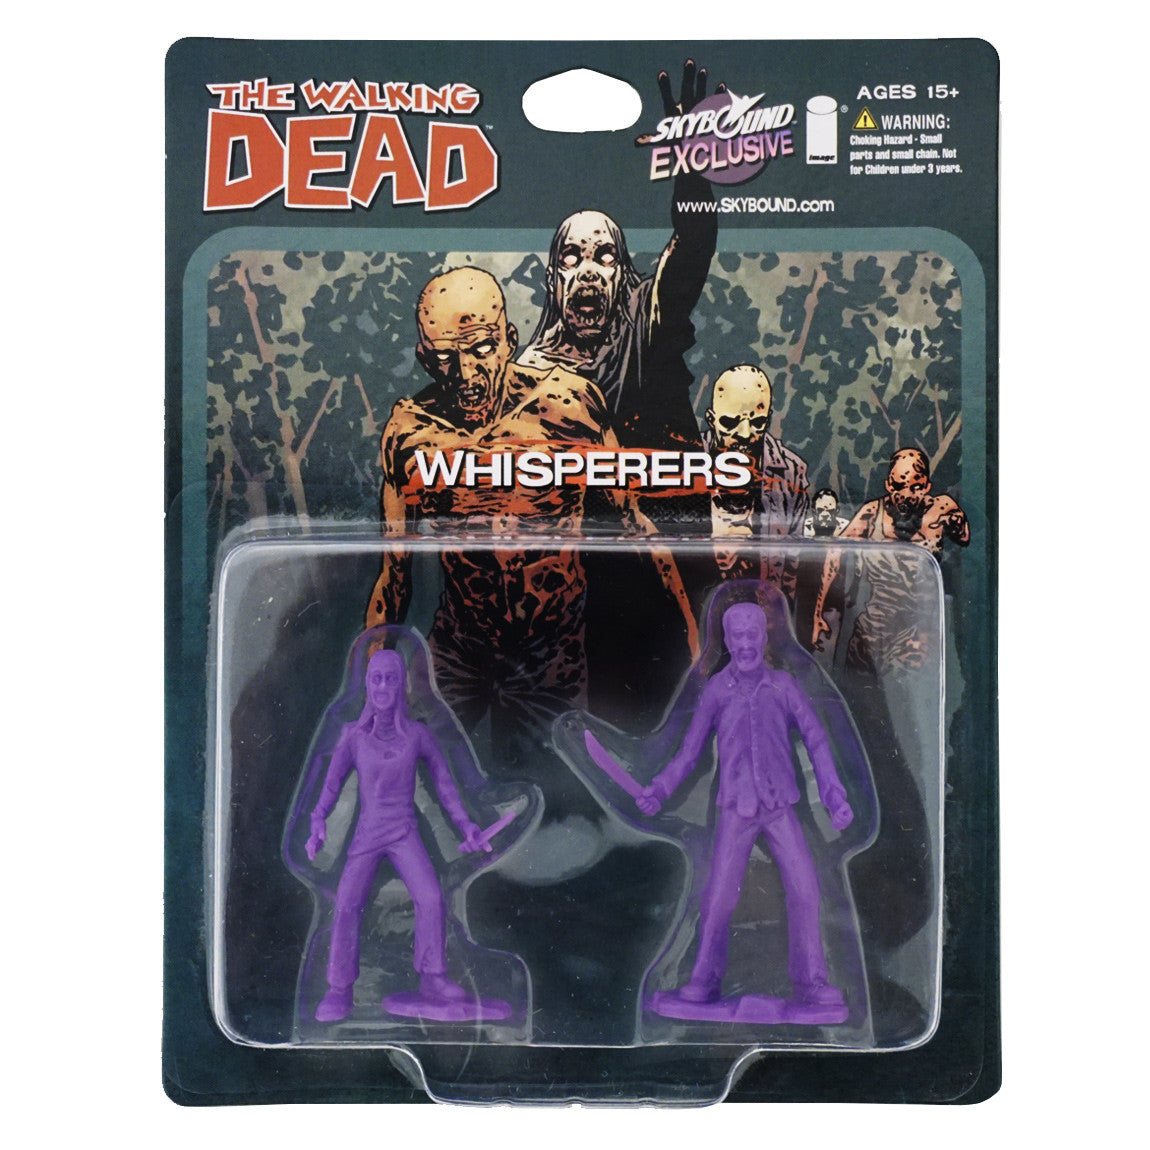 THE WALKING DEAD - The Whisperers PVC Figure 2-Pack (Purple)